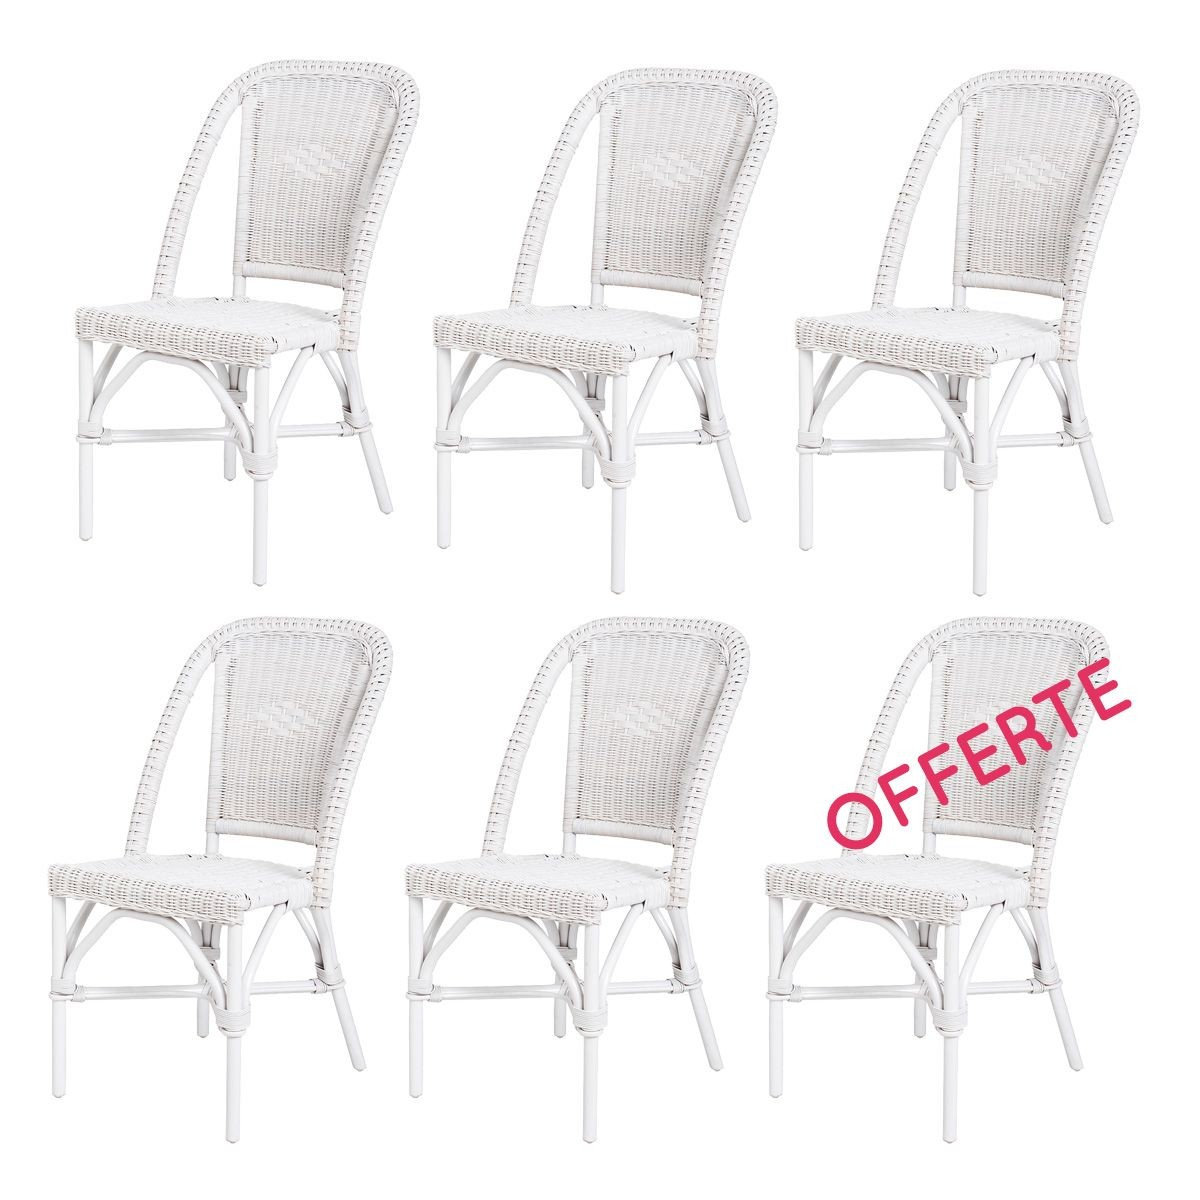 chaise en rotin blanc selva rotin design lot de 6 chaises soldes chaises la redoute. Black Bedroom Furniture Sets. Home Design Ideas